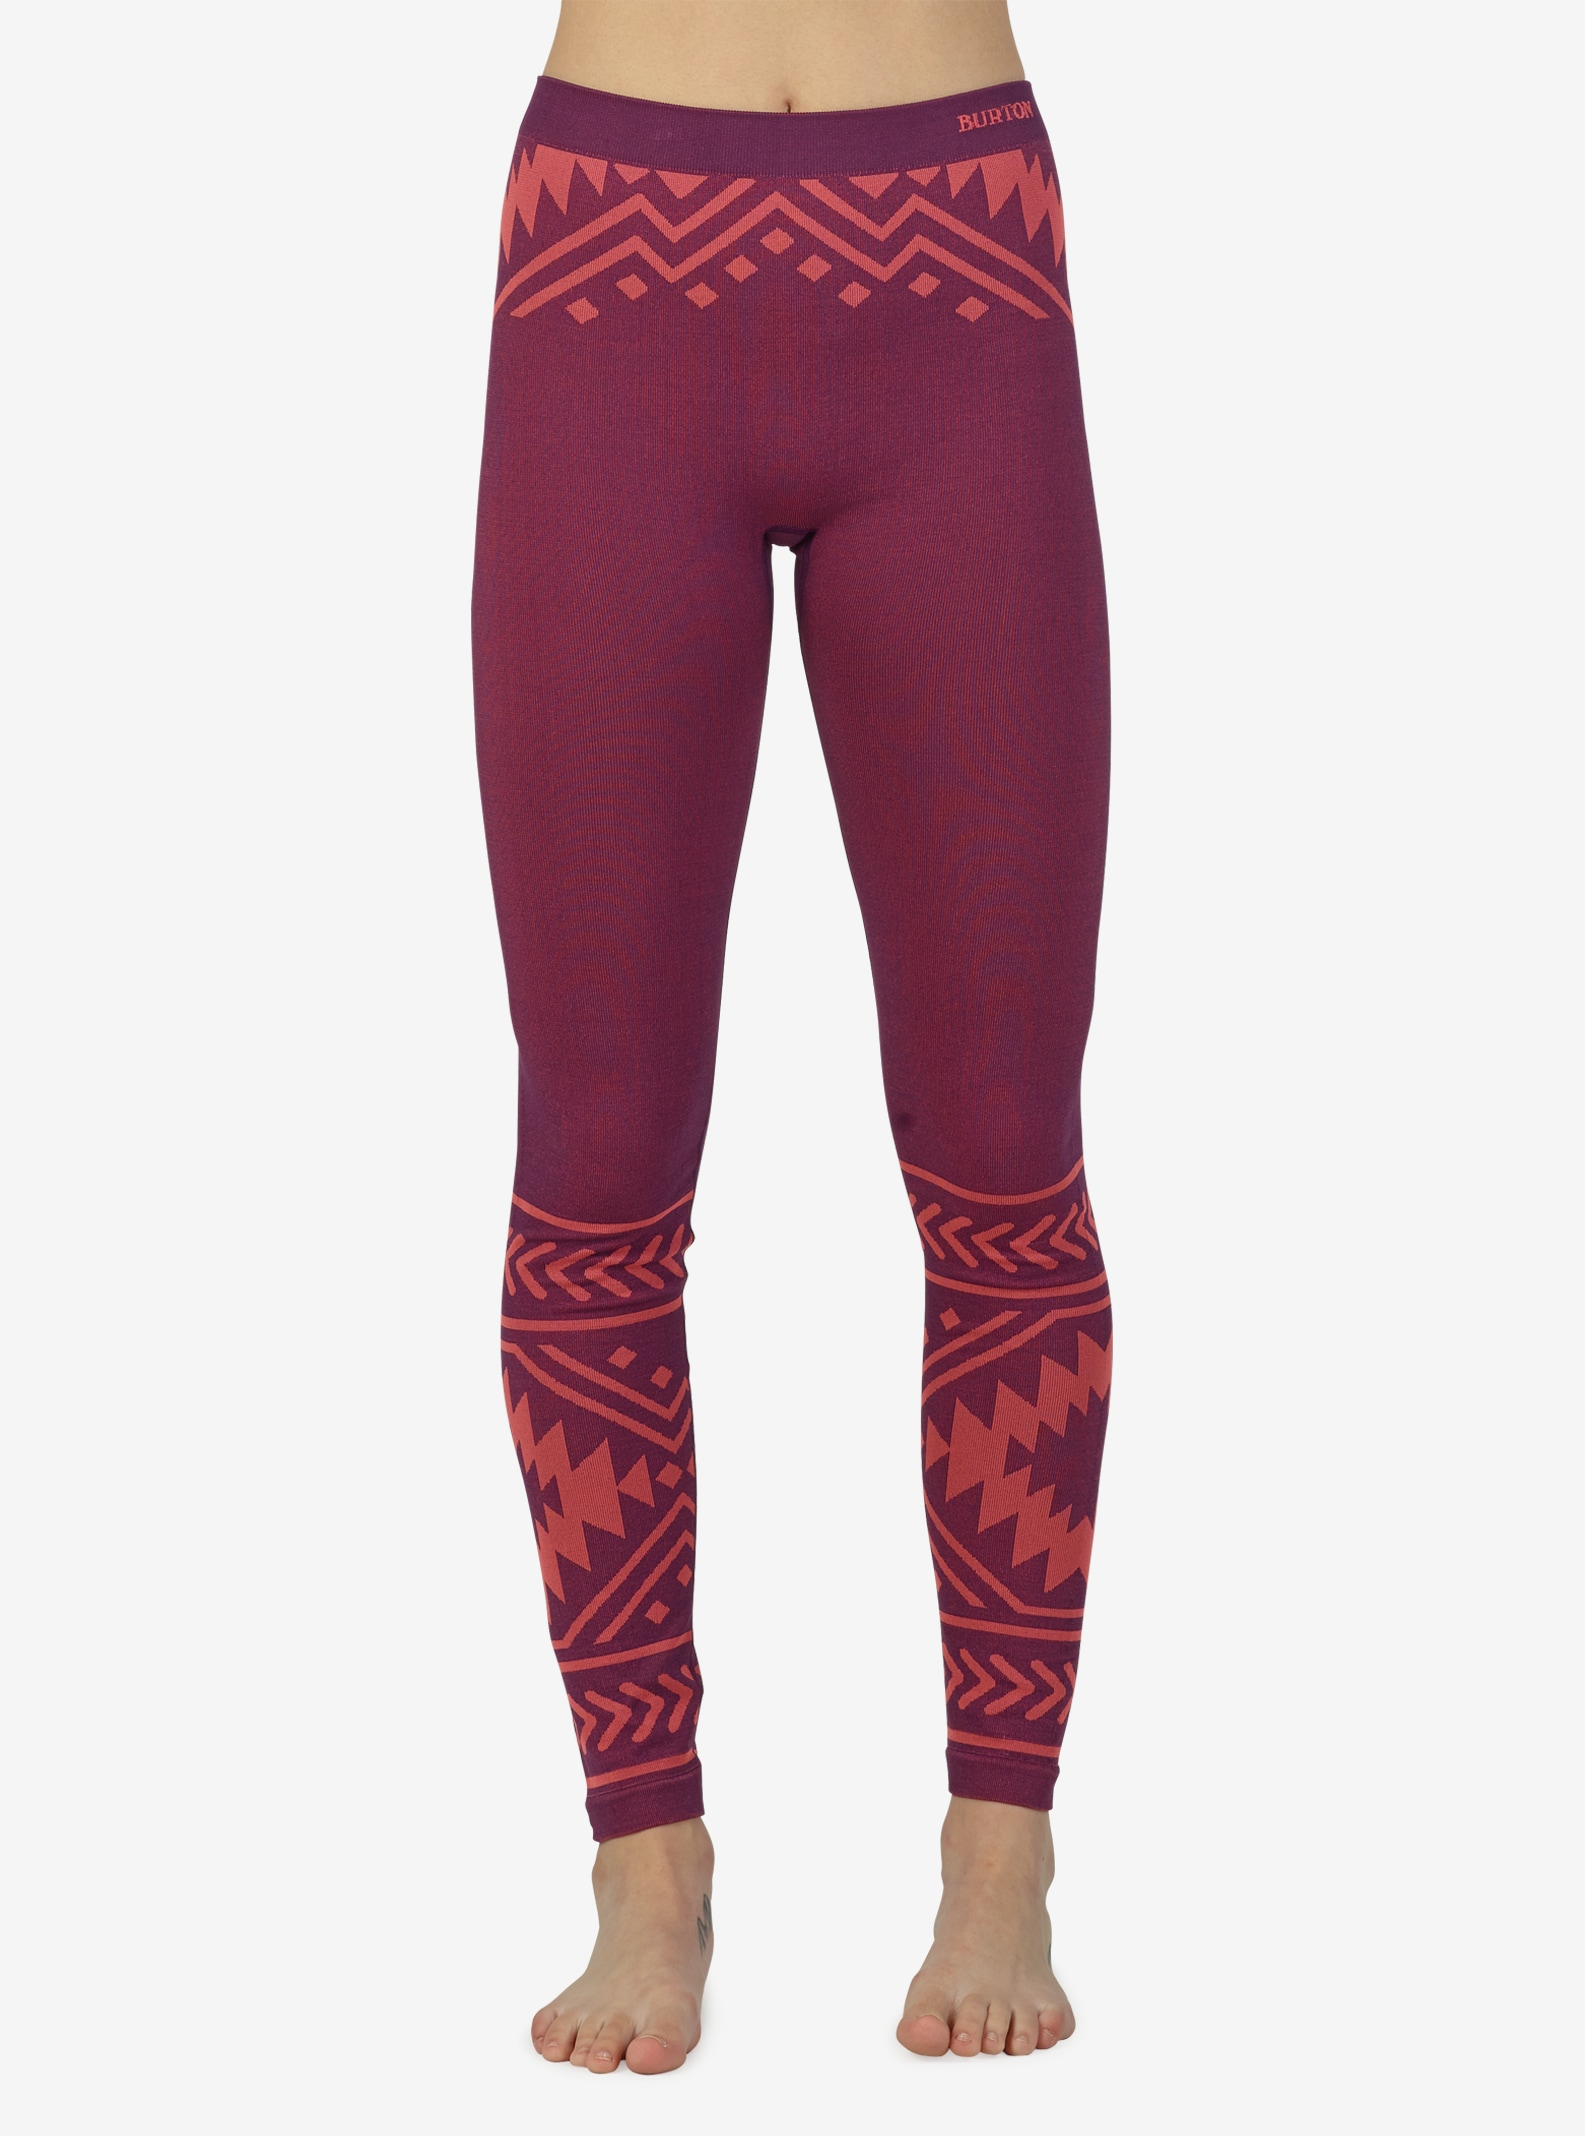 Women's Burton Active Seamless Tight shown in Geo